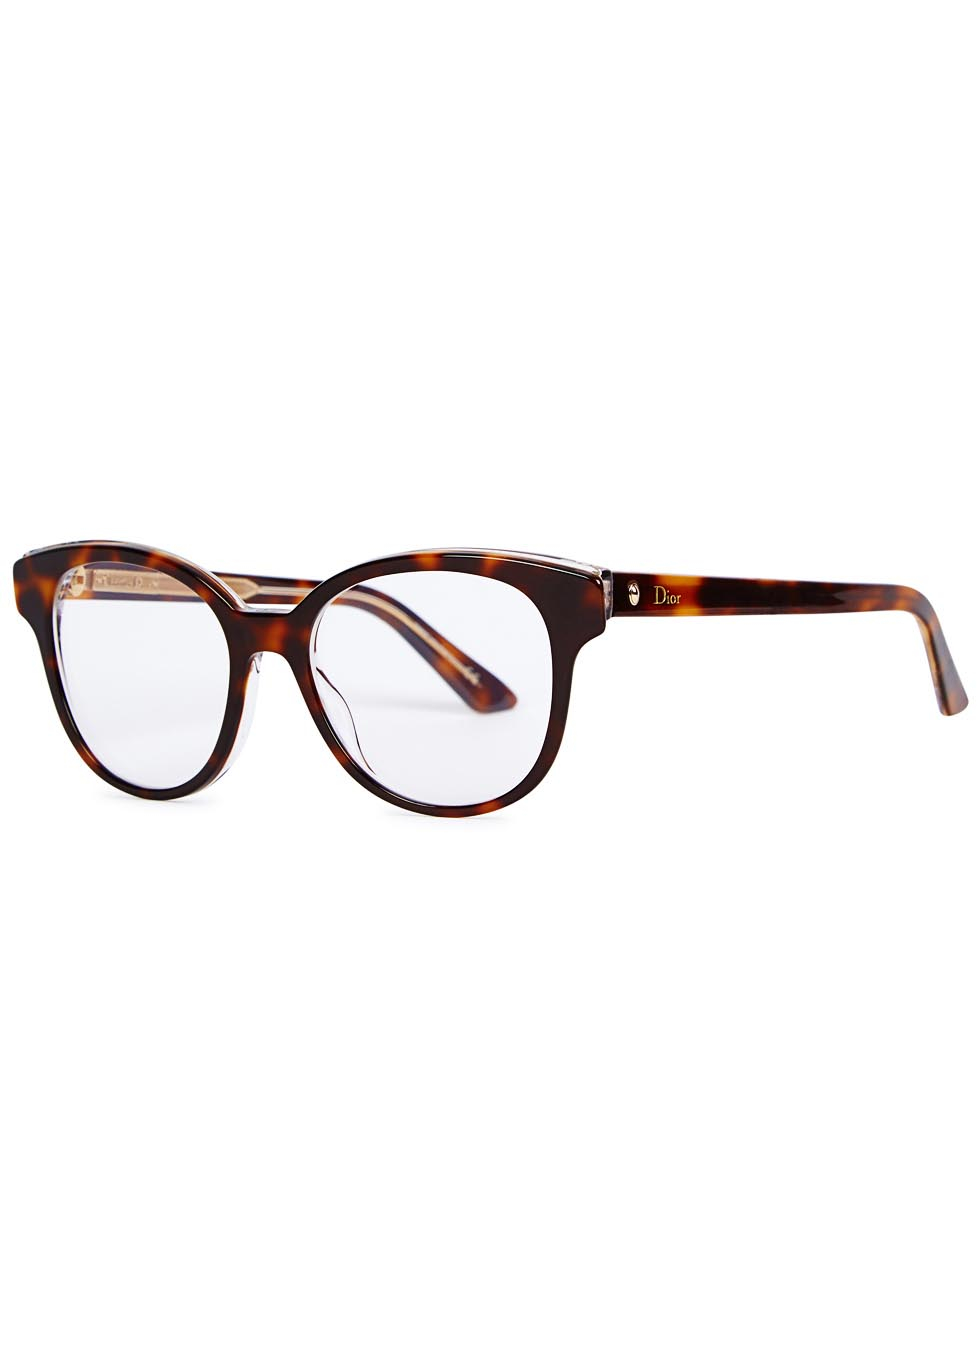 Dior Montaigne 1 Tortoiseshell Optical Glasses in Brown Lyst